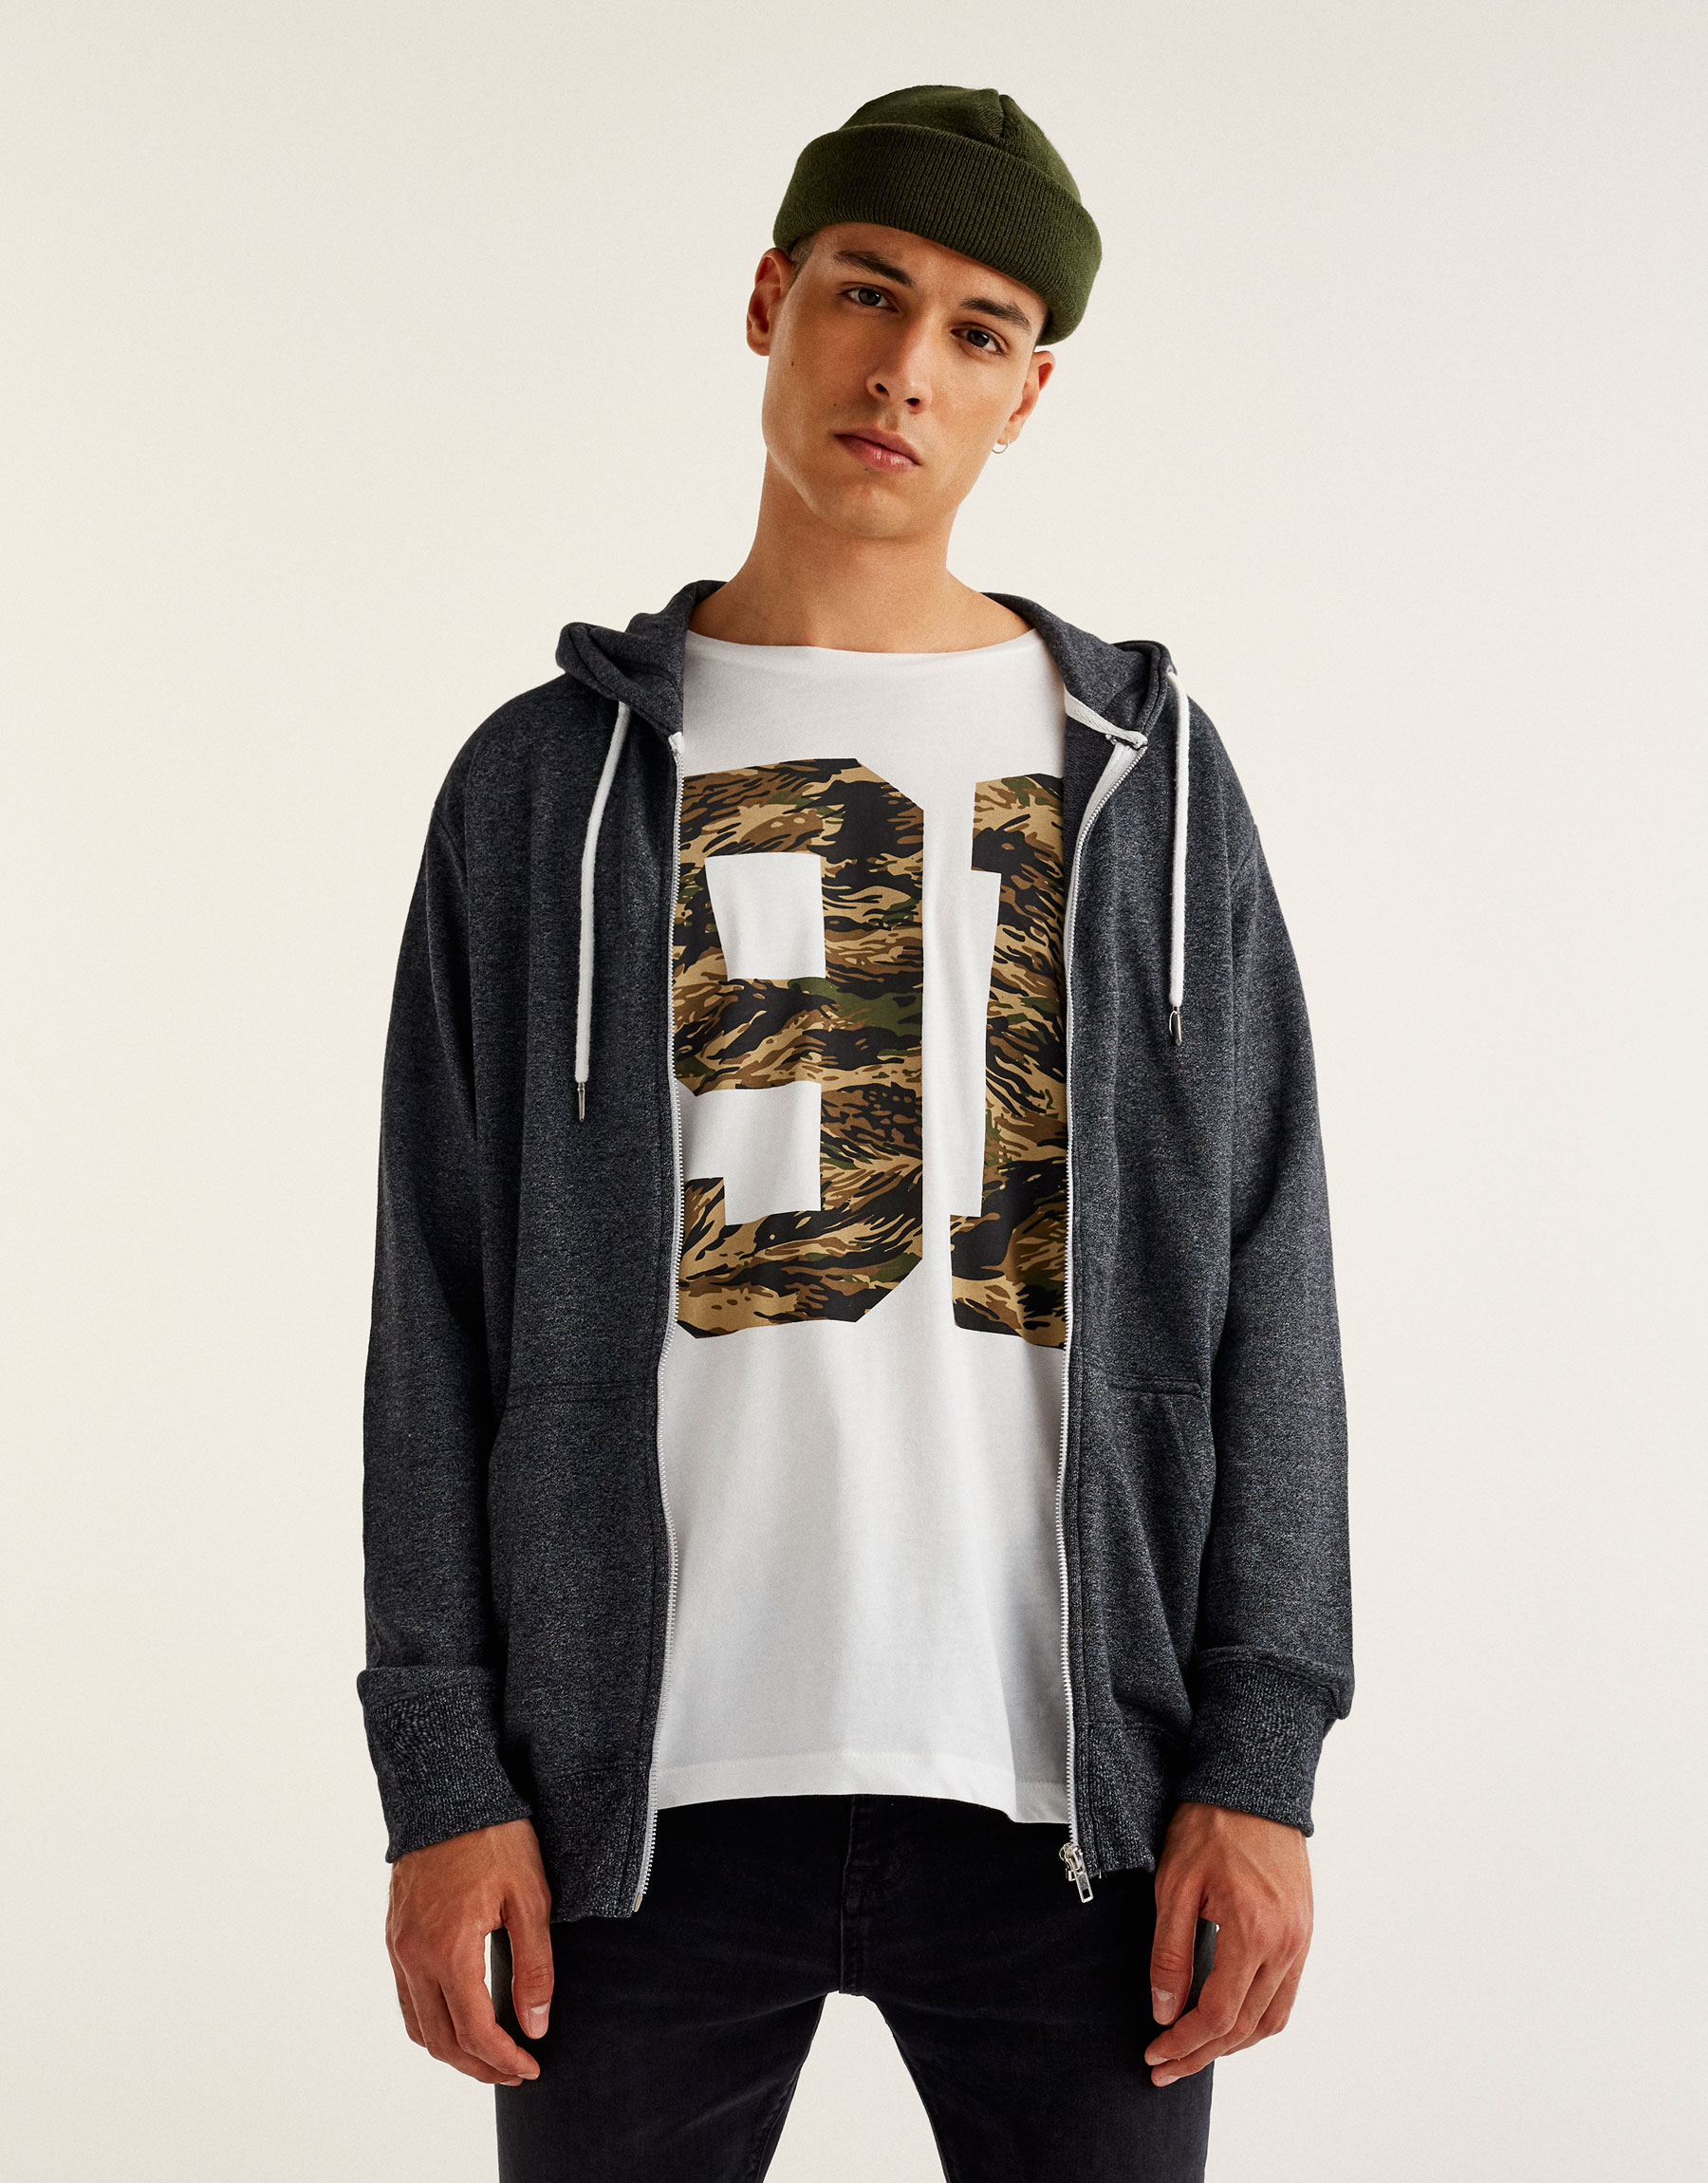 T-shirt with printed camouflage numbers